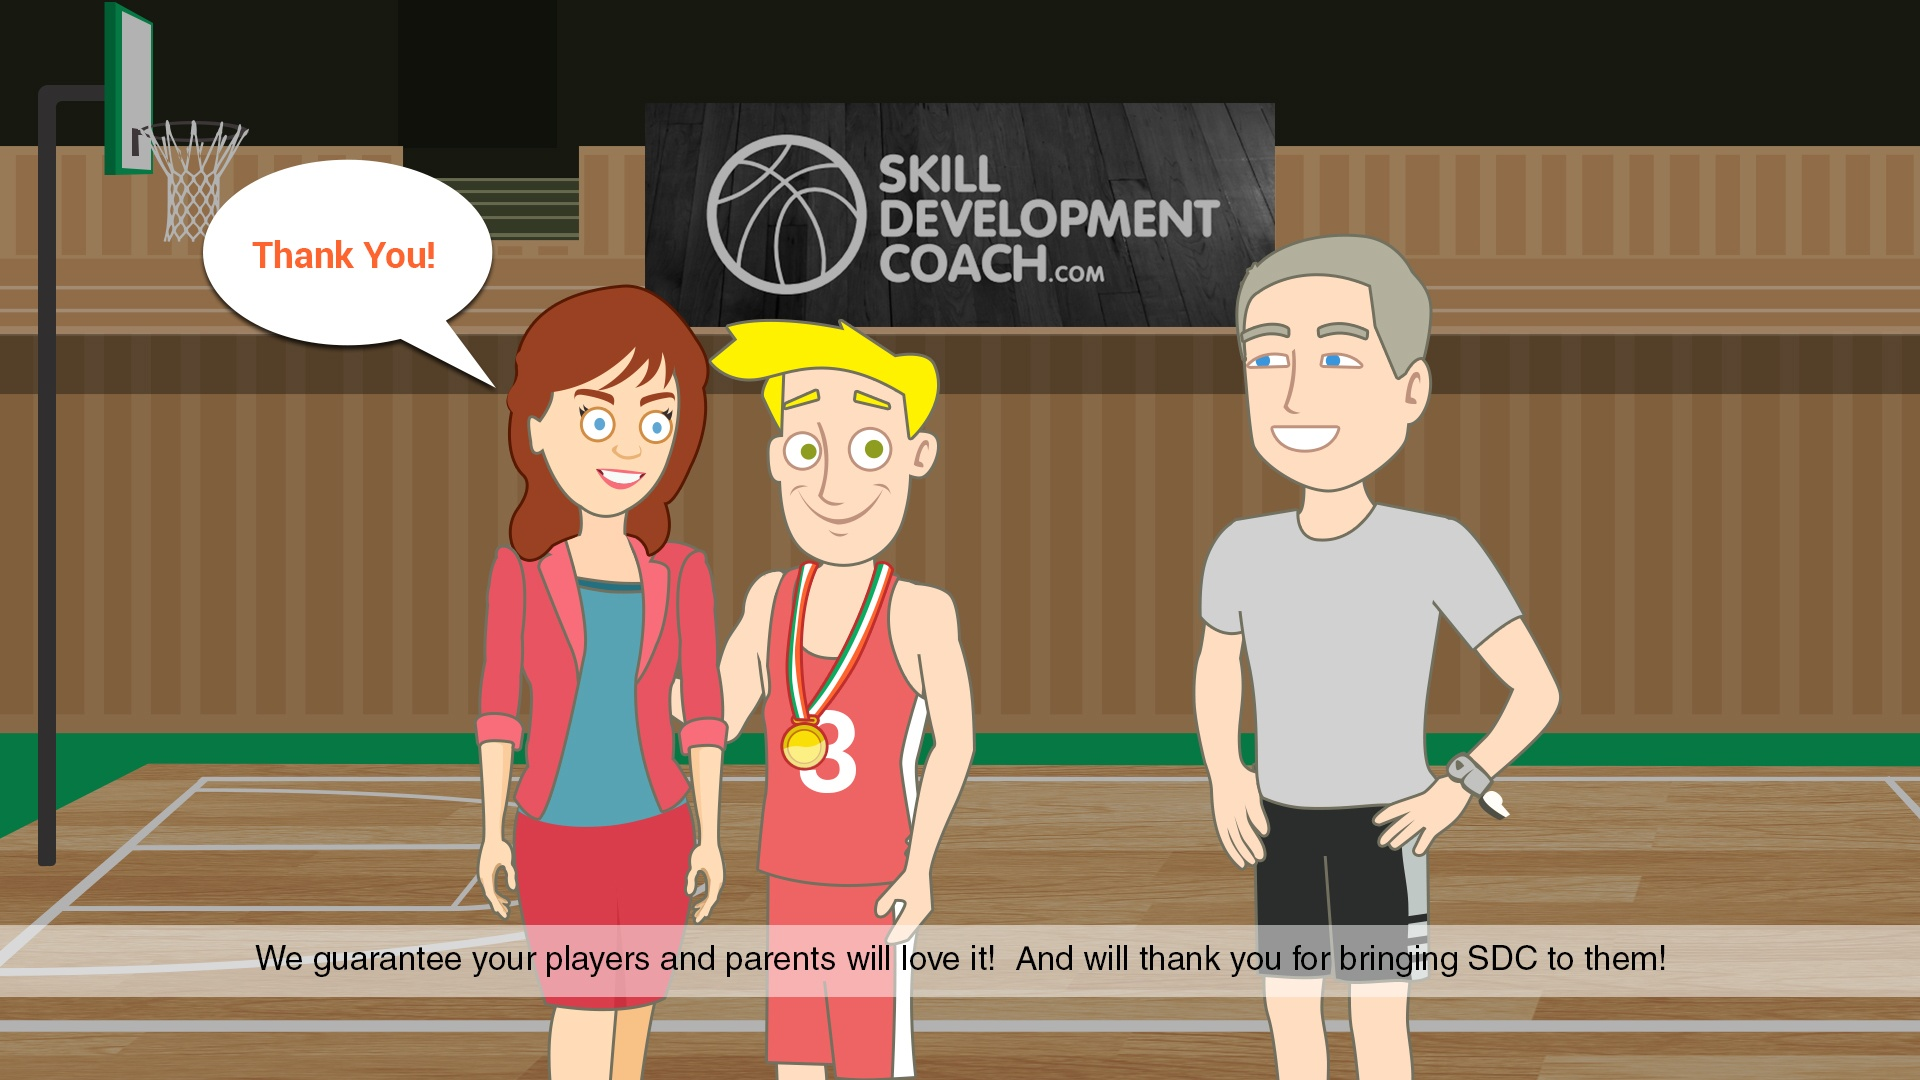 HOW TO BECOME A SKILL DEVELOPMENT COACH